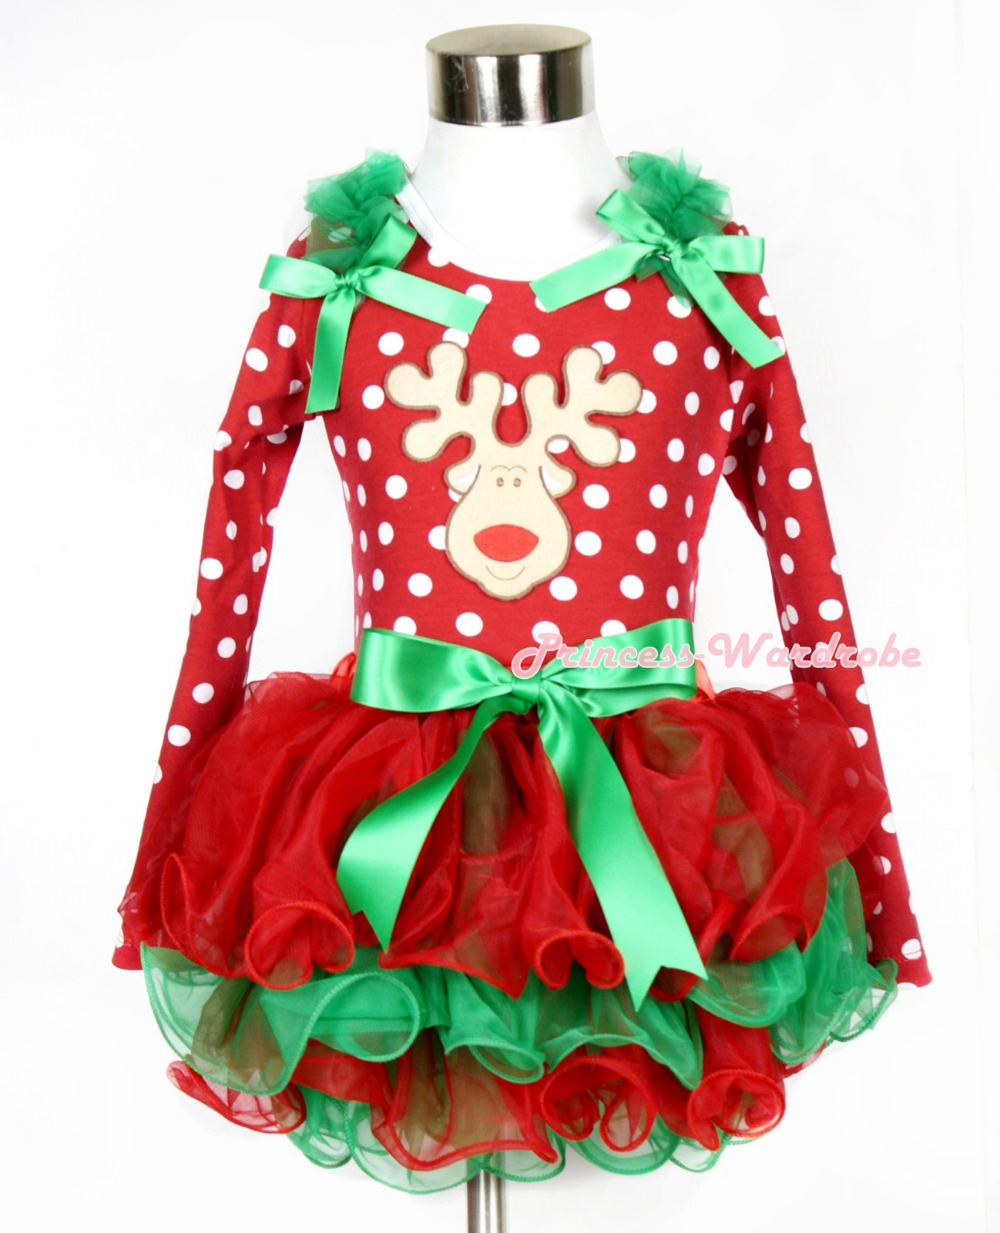 Xmas Kelly Green Bow Red Green Petal Pettiskirt Minnie Dots Long Sleeve Top Kelly Green Ruffles Bow Christmas Reindeer MAMW321 christmas hat reindeer white top minnie dots petal pettiskirt girls outfit nb 8y